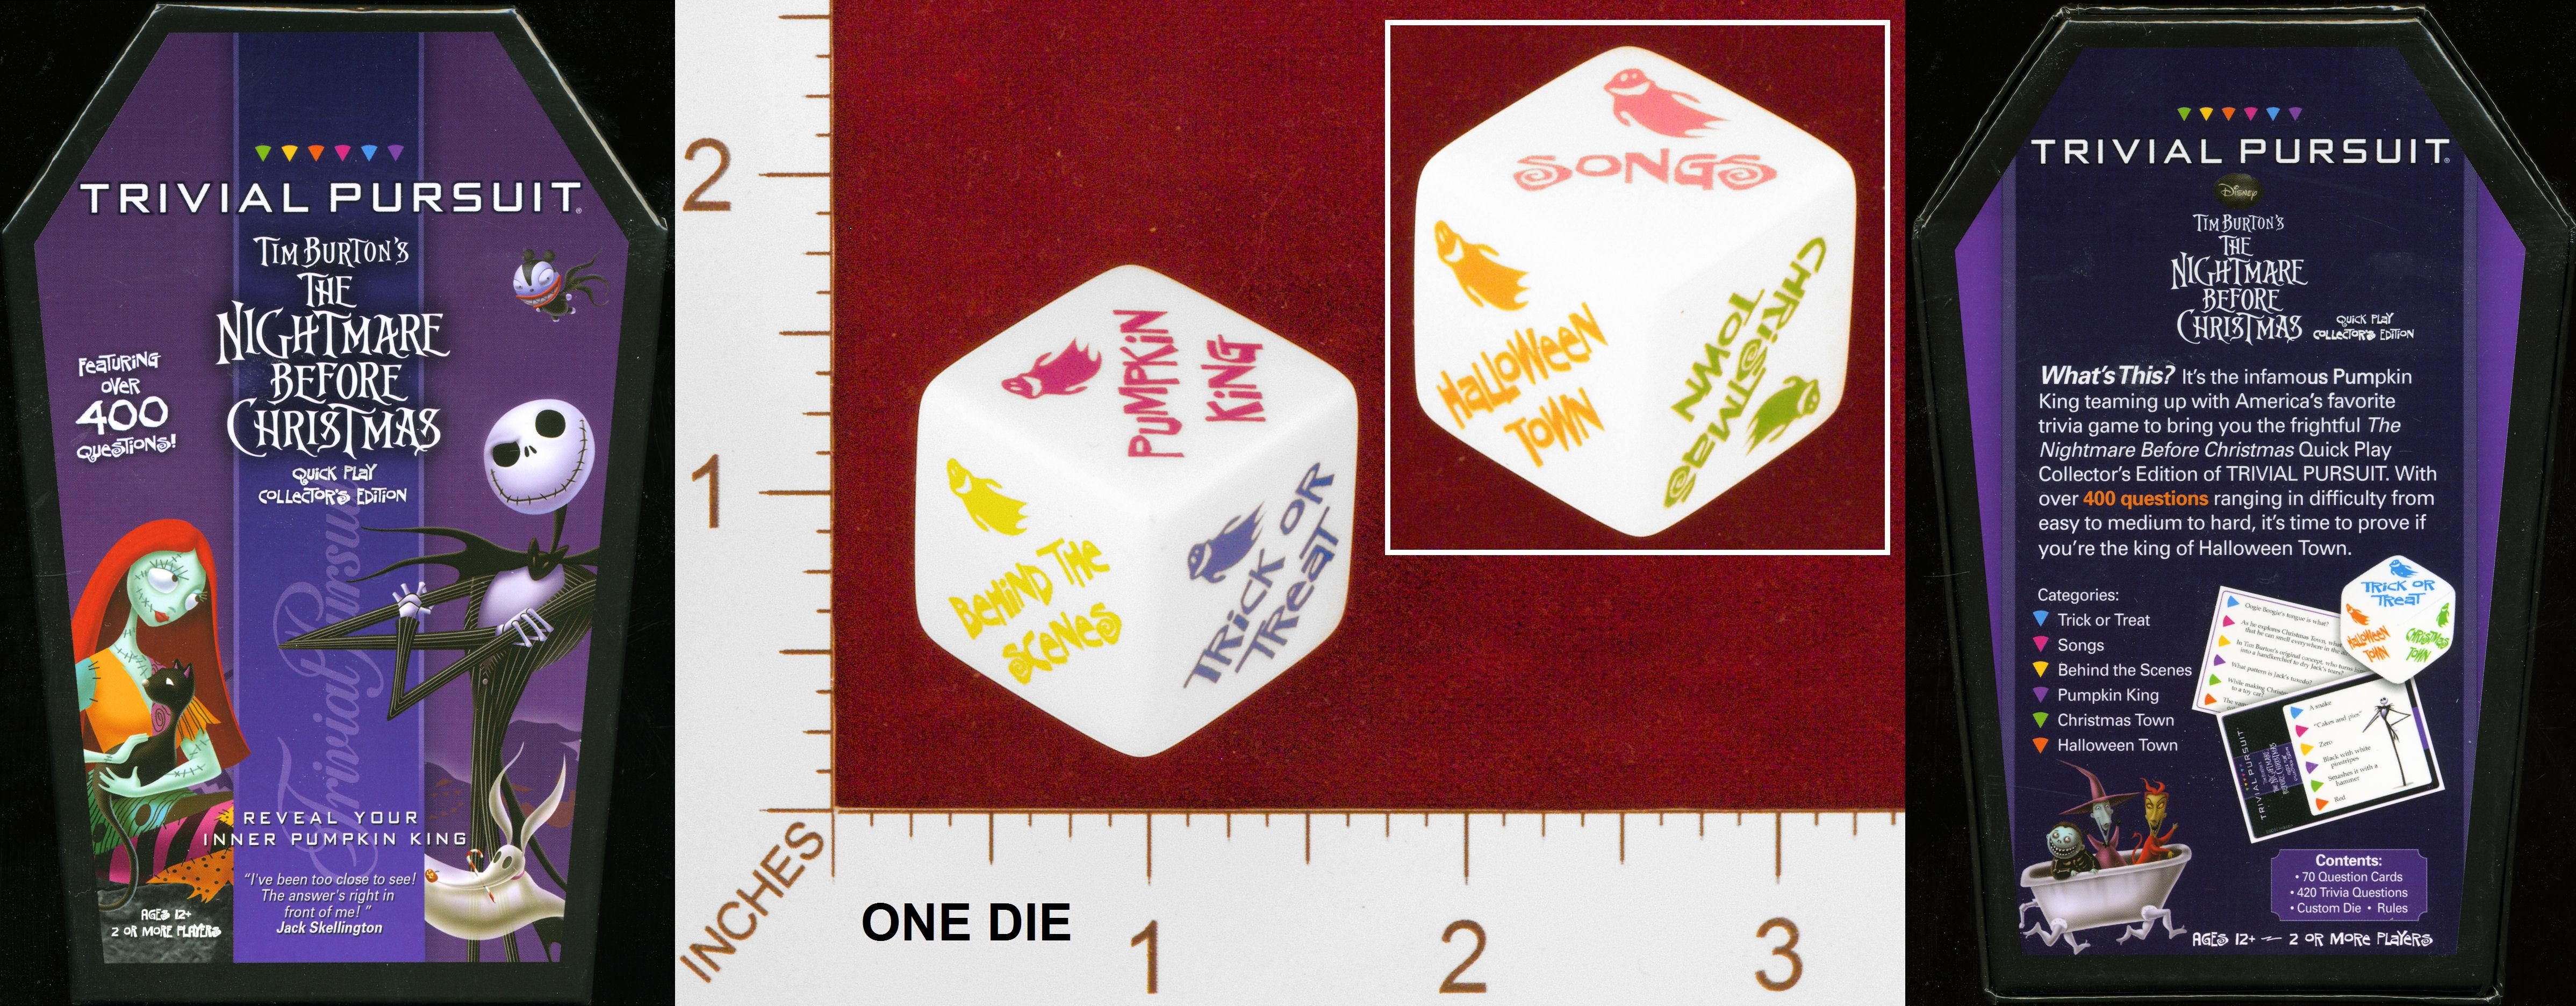 DiceCollector.com - DICE THEME : GENERAL :